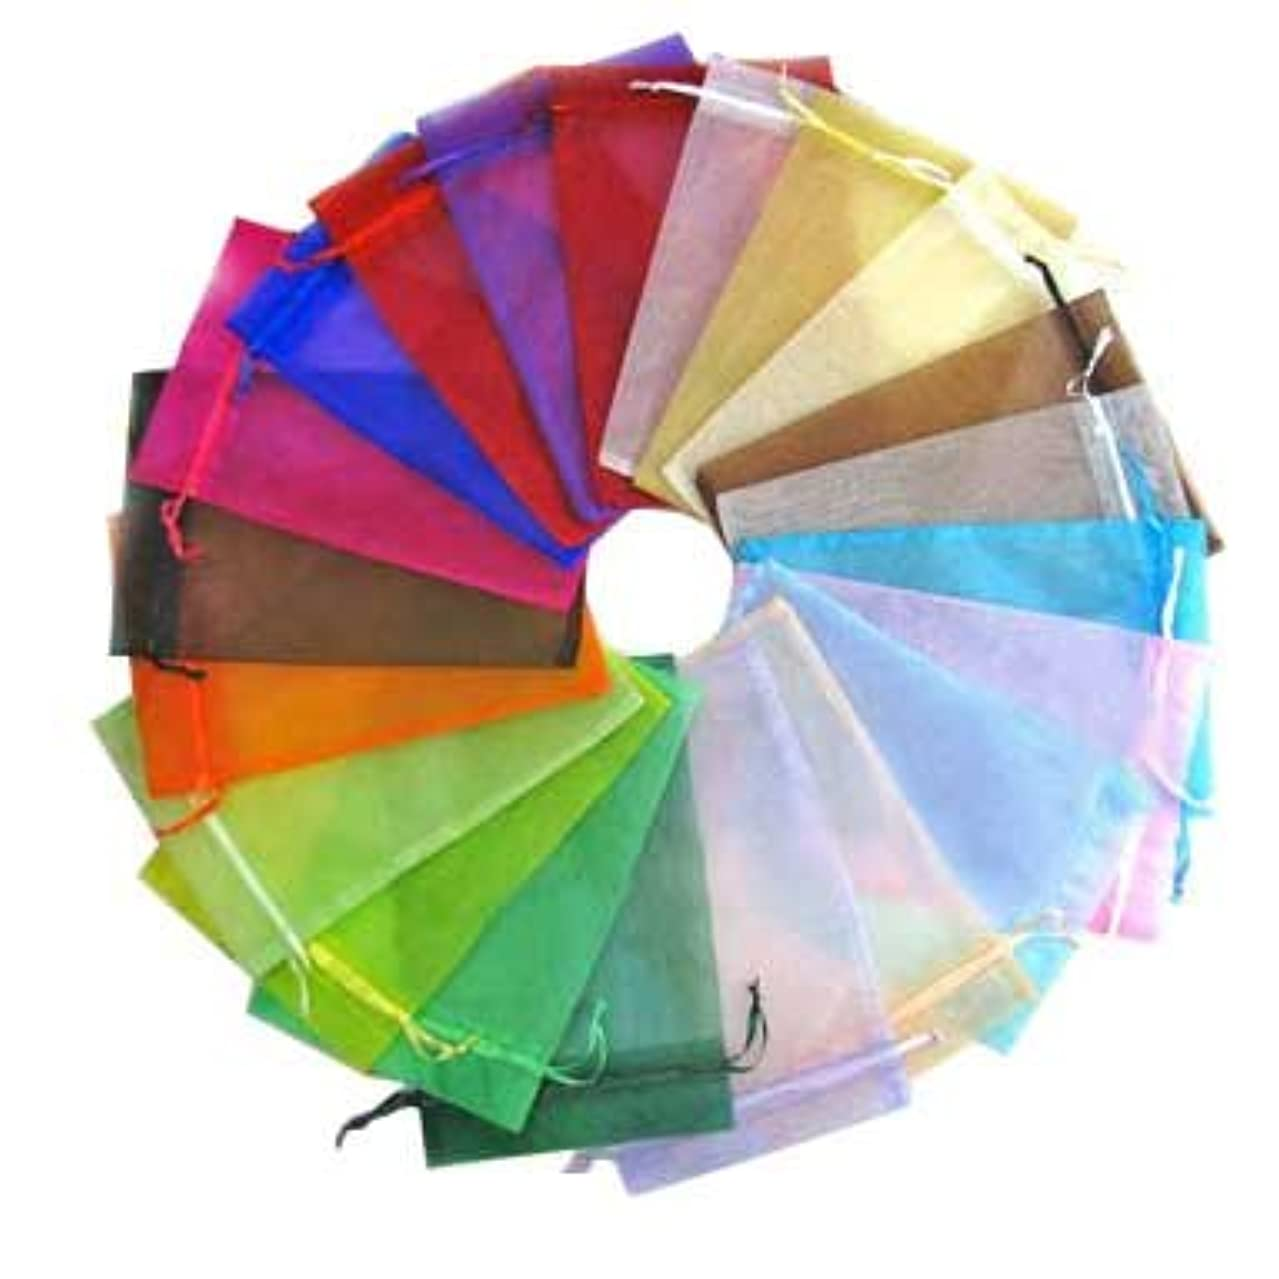 PH PandaHall 200pcs Rectangle Organza Gift Bags Drawstring Pouches for Wedding Party Christmas Warp Favor Gift Bags Mixed Color 12x9cm